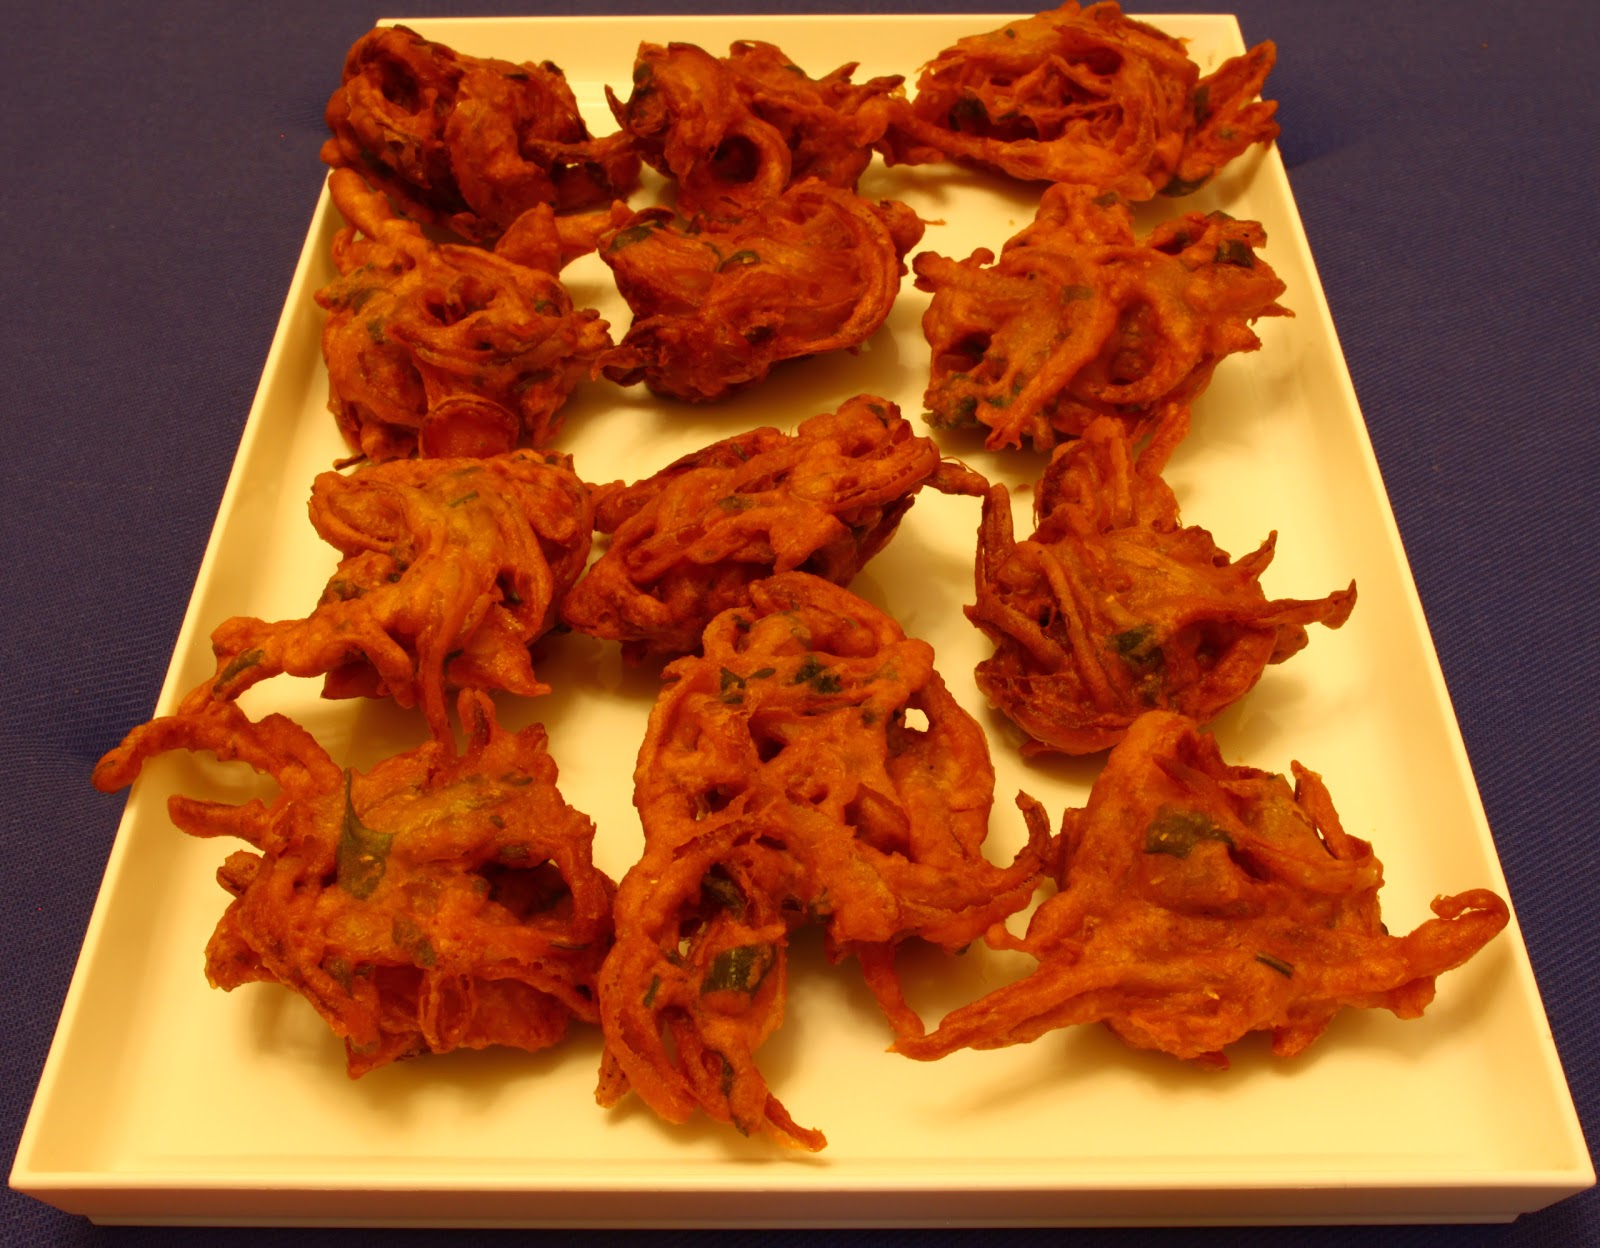 Niti Agni Recipes: Onion Pakora or Indian Fritters